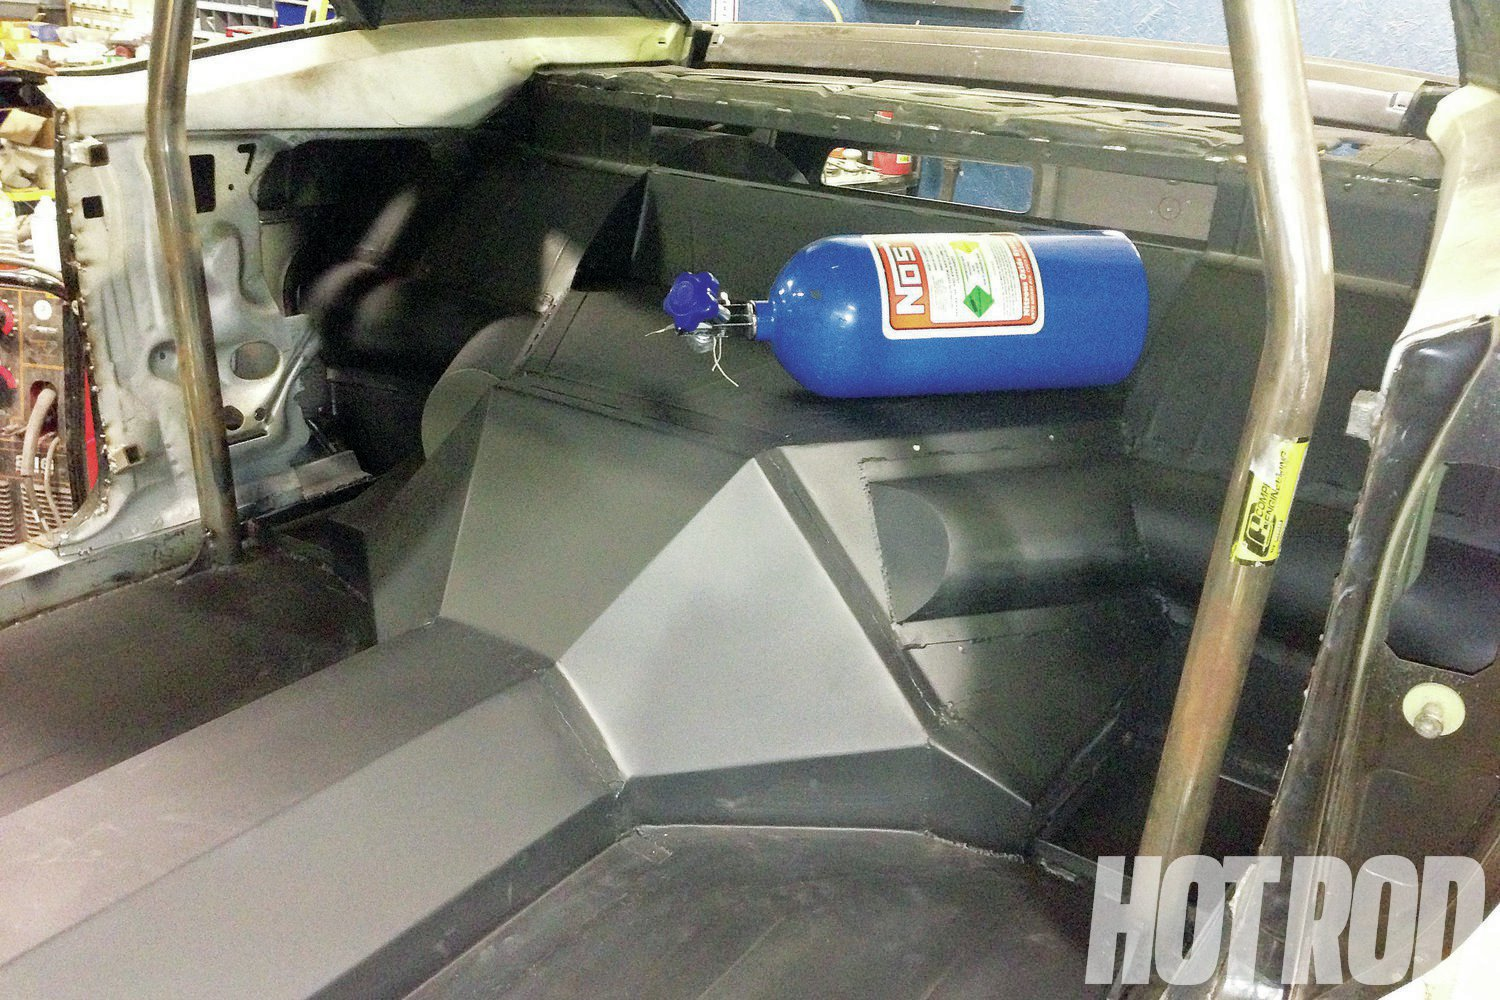 Inside, the floor of the car shows the round ducts that channel air from the quarter-panel to the coolers mounted above the transmission. A Competition Engineering rollbar was added as the floorboards were being wrapped up.